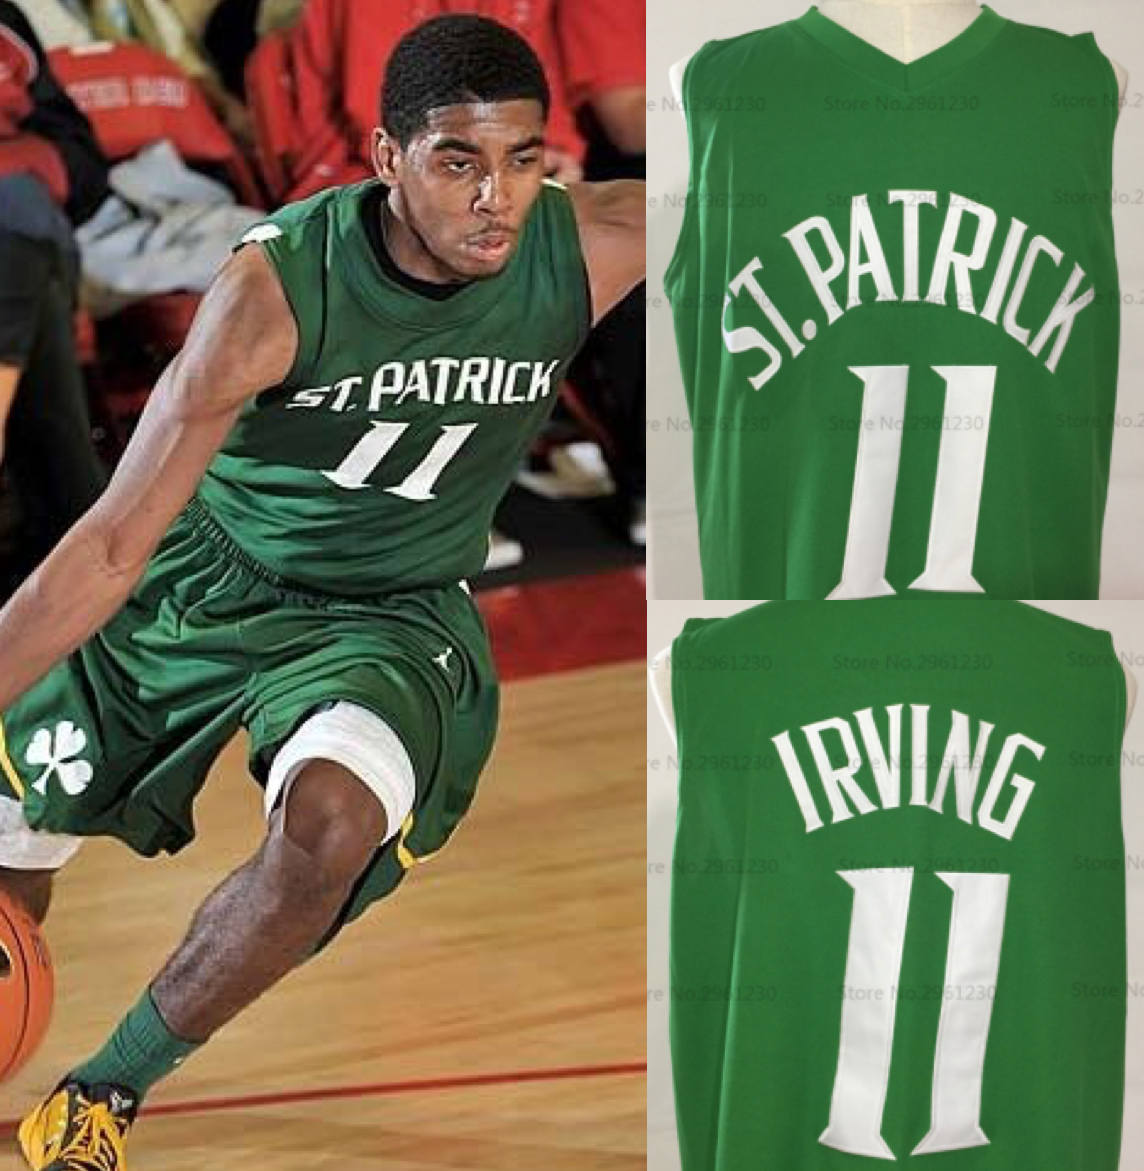 separation shoes d0de5 dde0c Kyrie Irving St. Patrick High School Basketball Jersey (Away) | Custom  Throwback Retro Jersey